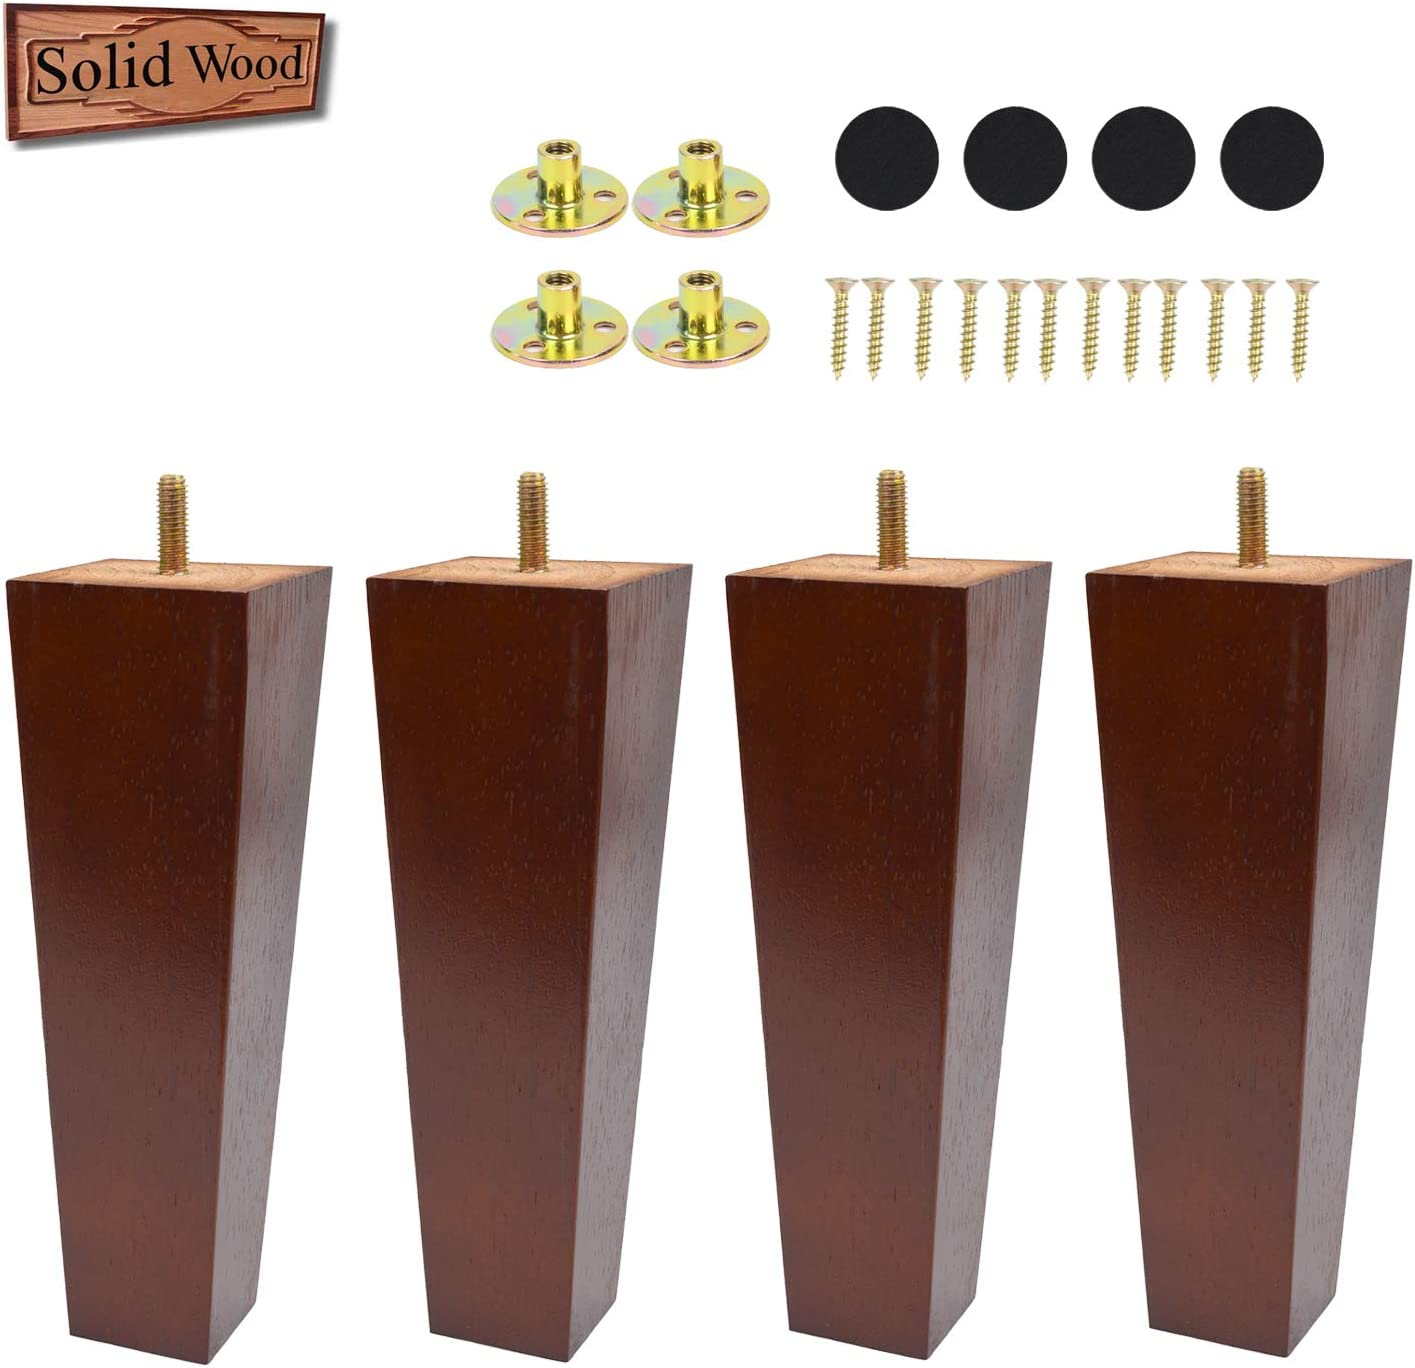 8 Inch Sofa Legs Replacement Furniture Legs Brown Solid Pyramid Wood Feet for Armchair Recliner Coffee Table Couch Chair Set of 4 with mounting Plates and Screws